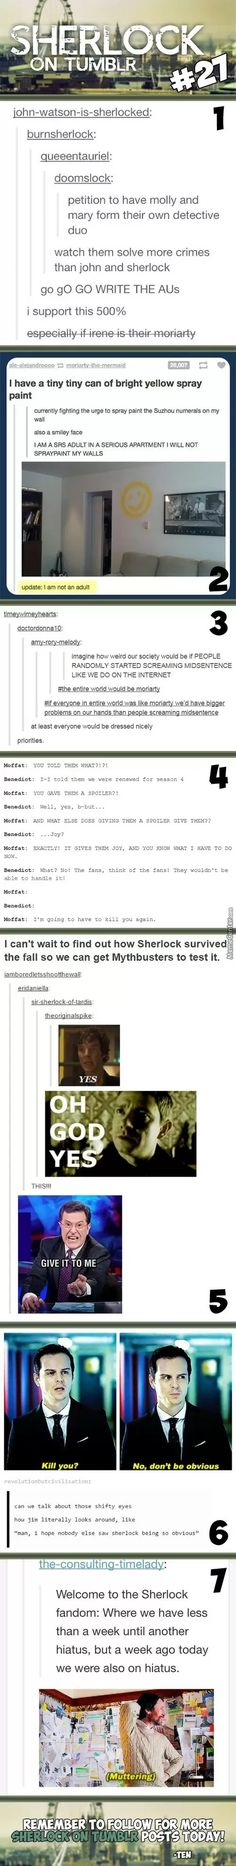 Sherlock On Tumblr #27